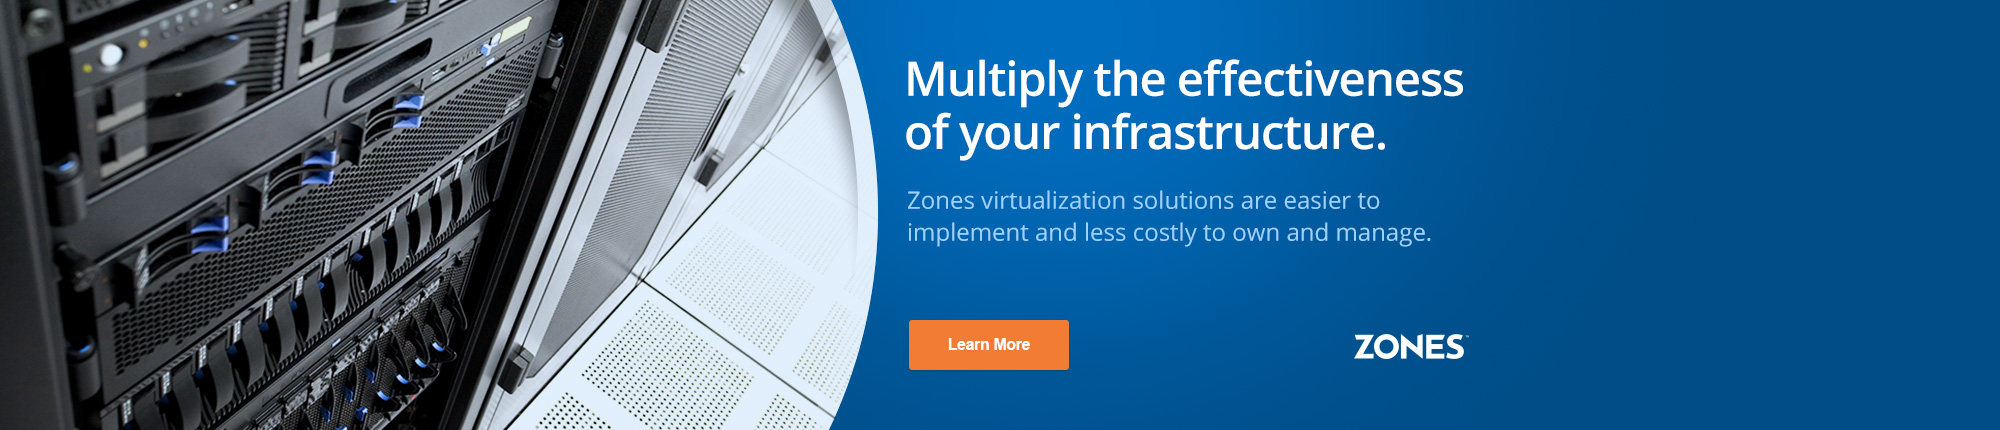 Virtualization and Cloud Solutions